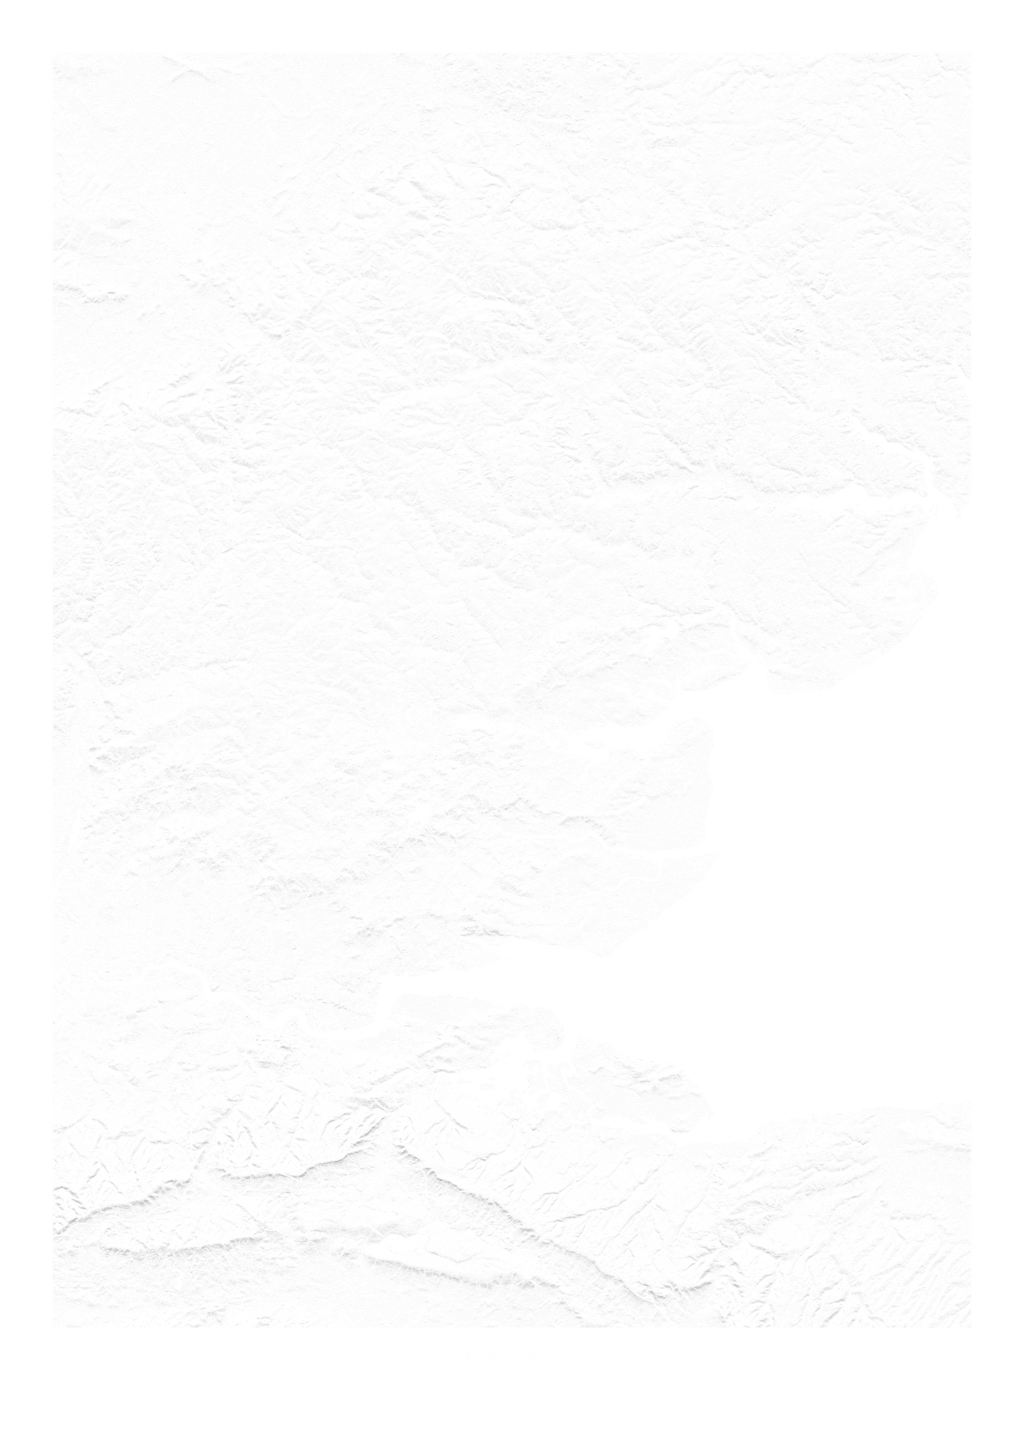 Essex wall map